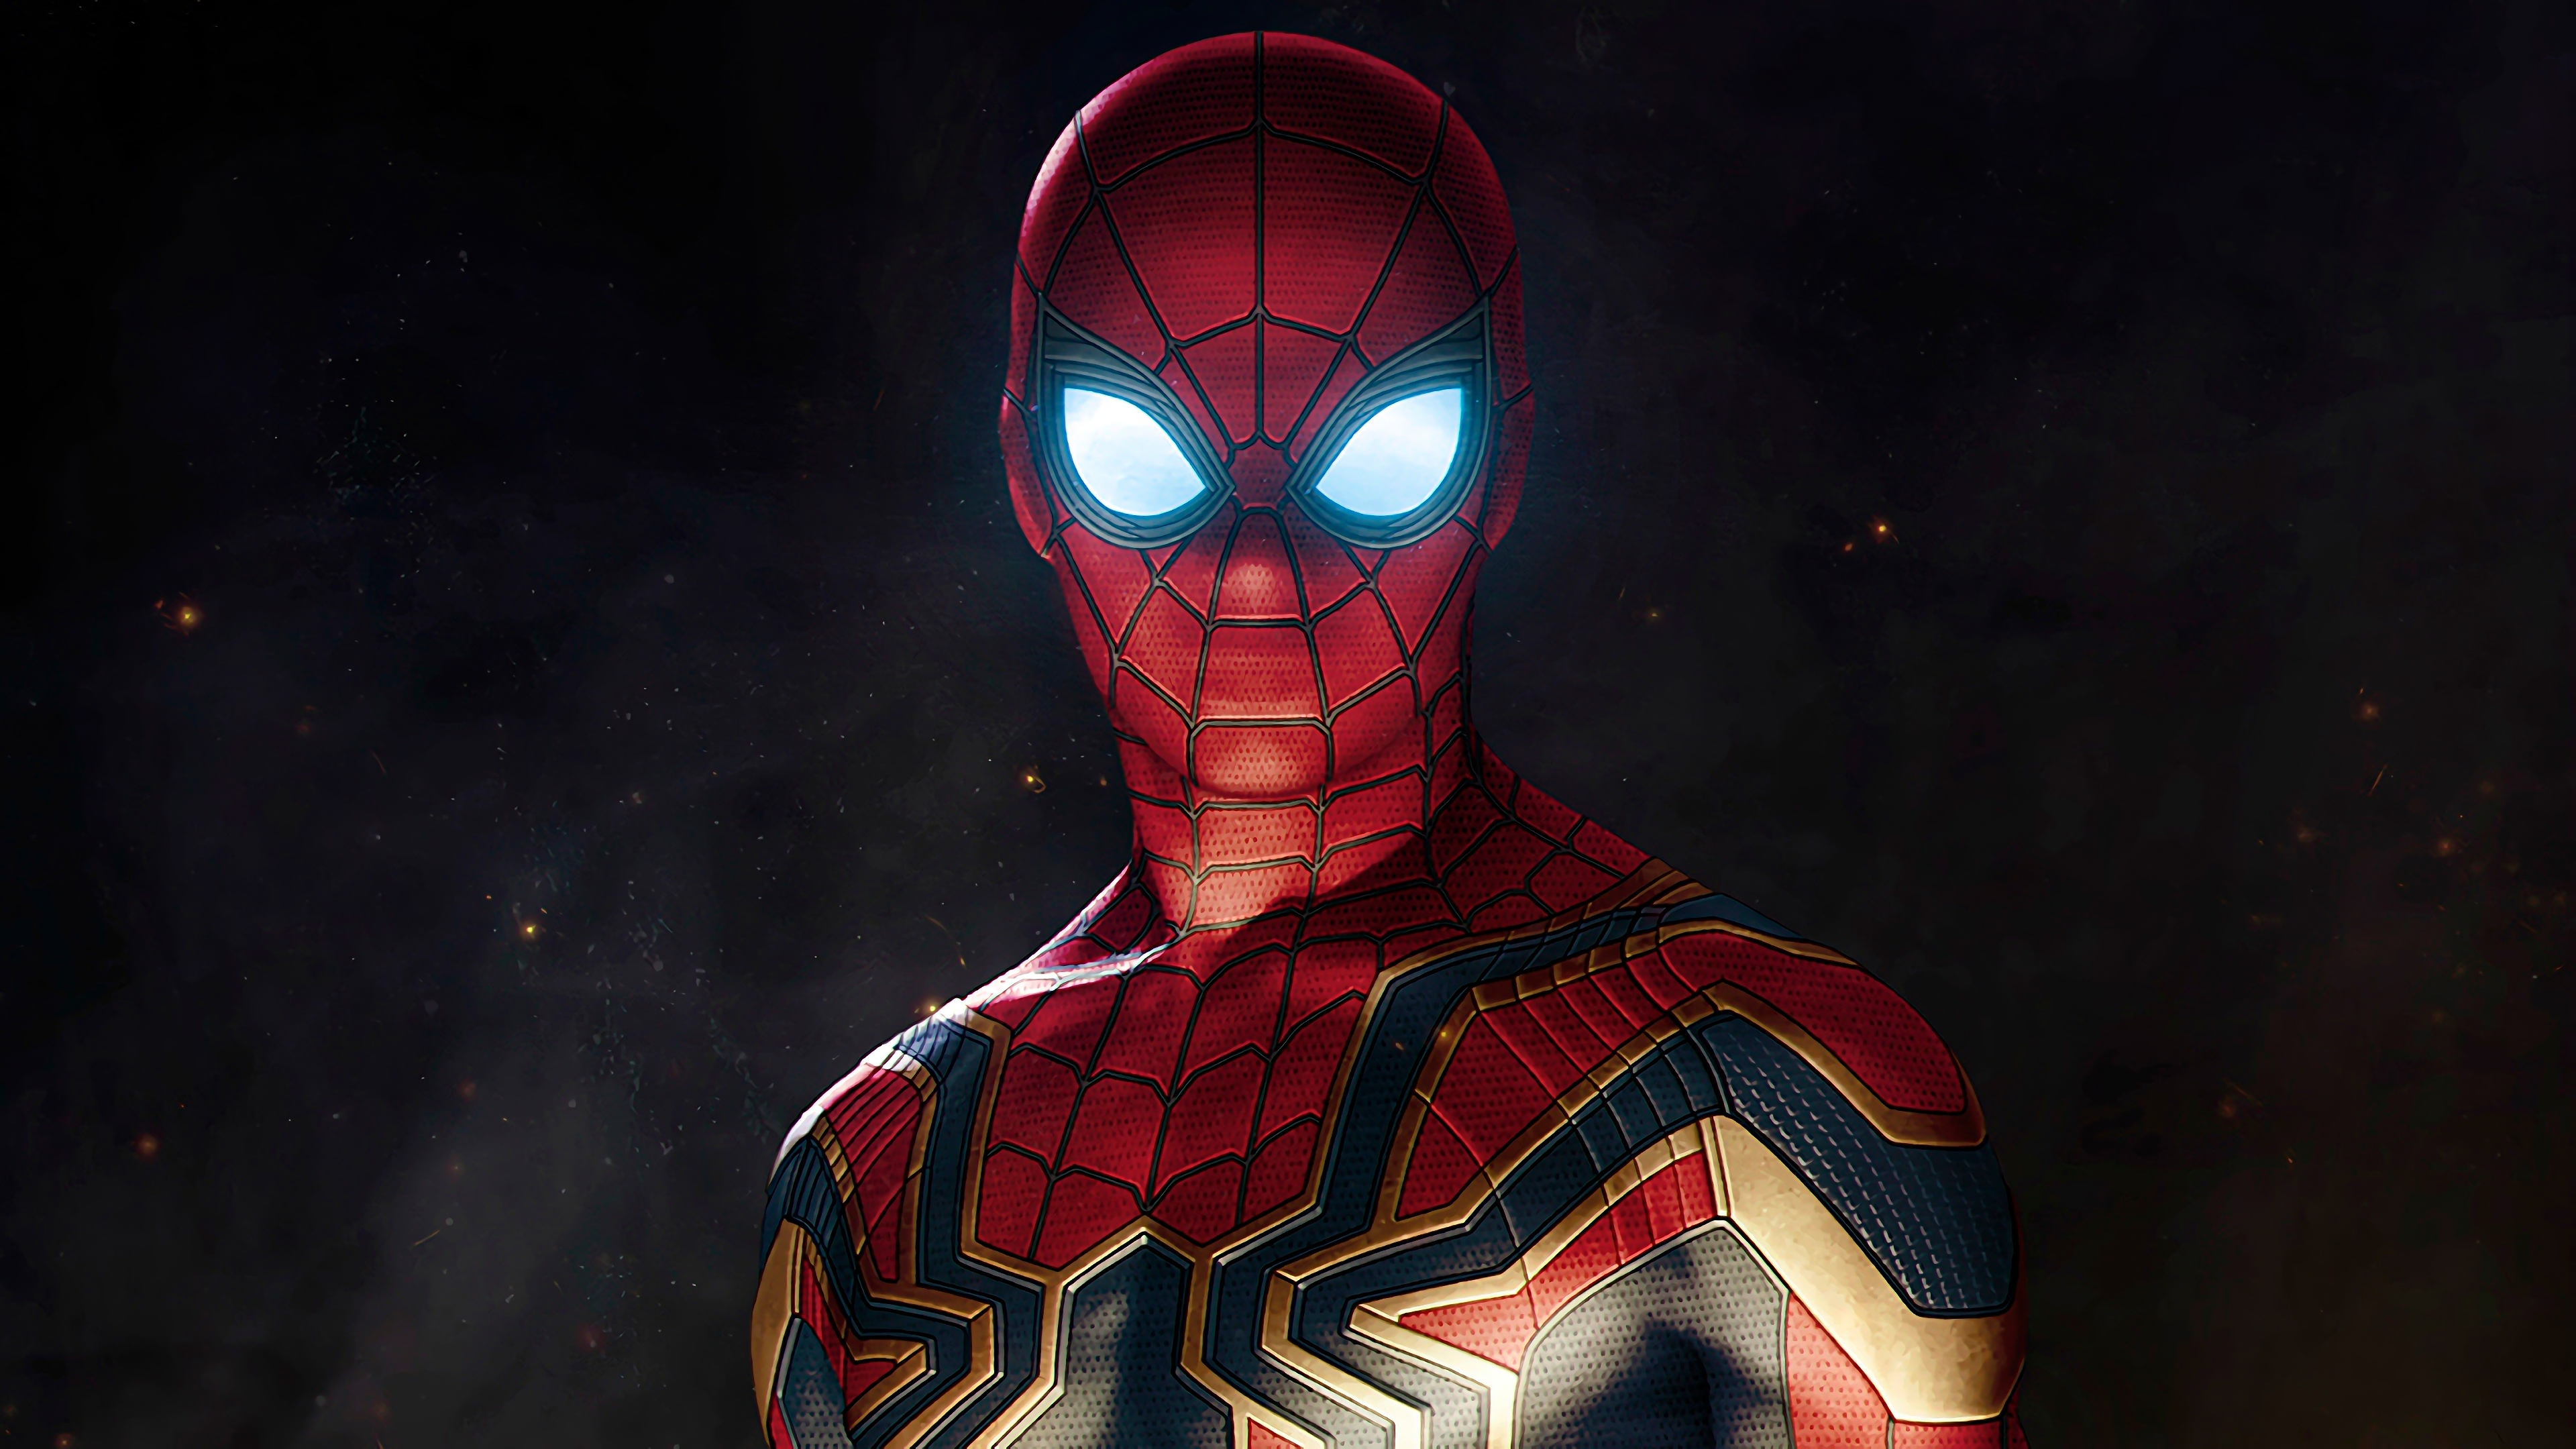 spiderman avengers infinity war suit, hd movies, 4k wallpapers